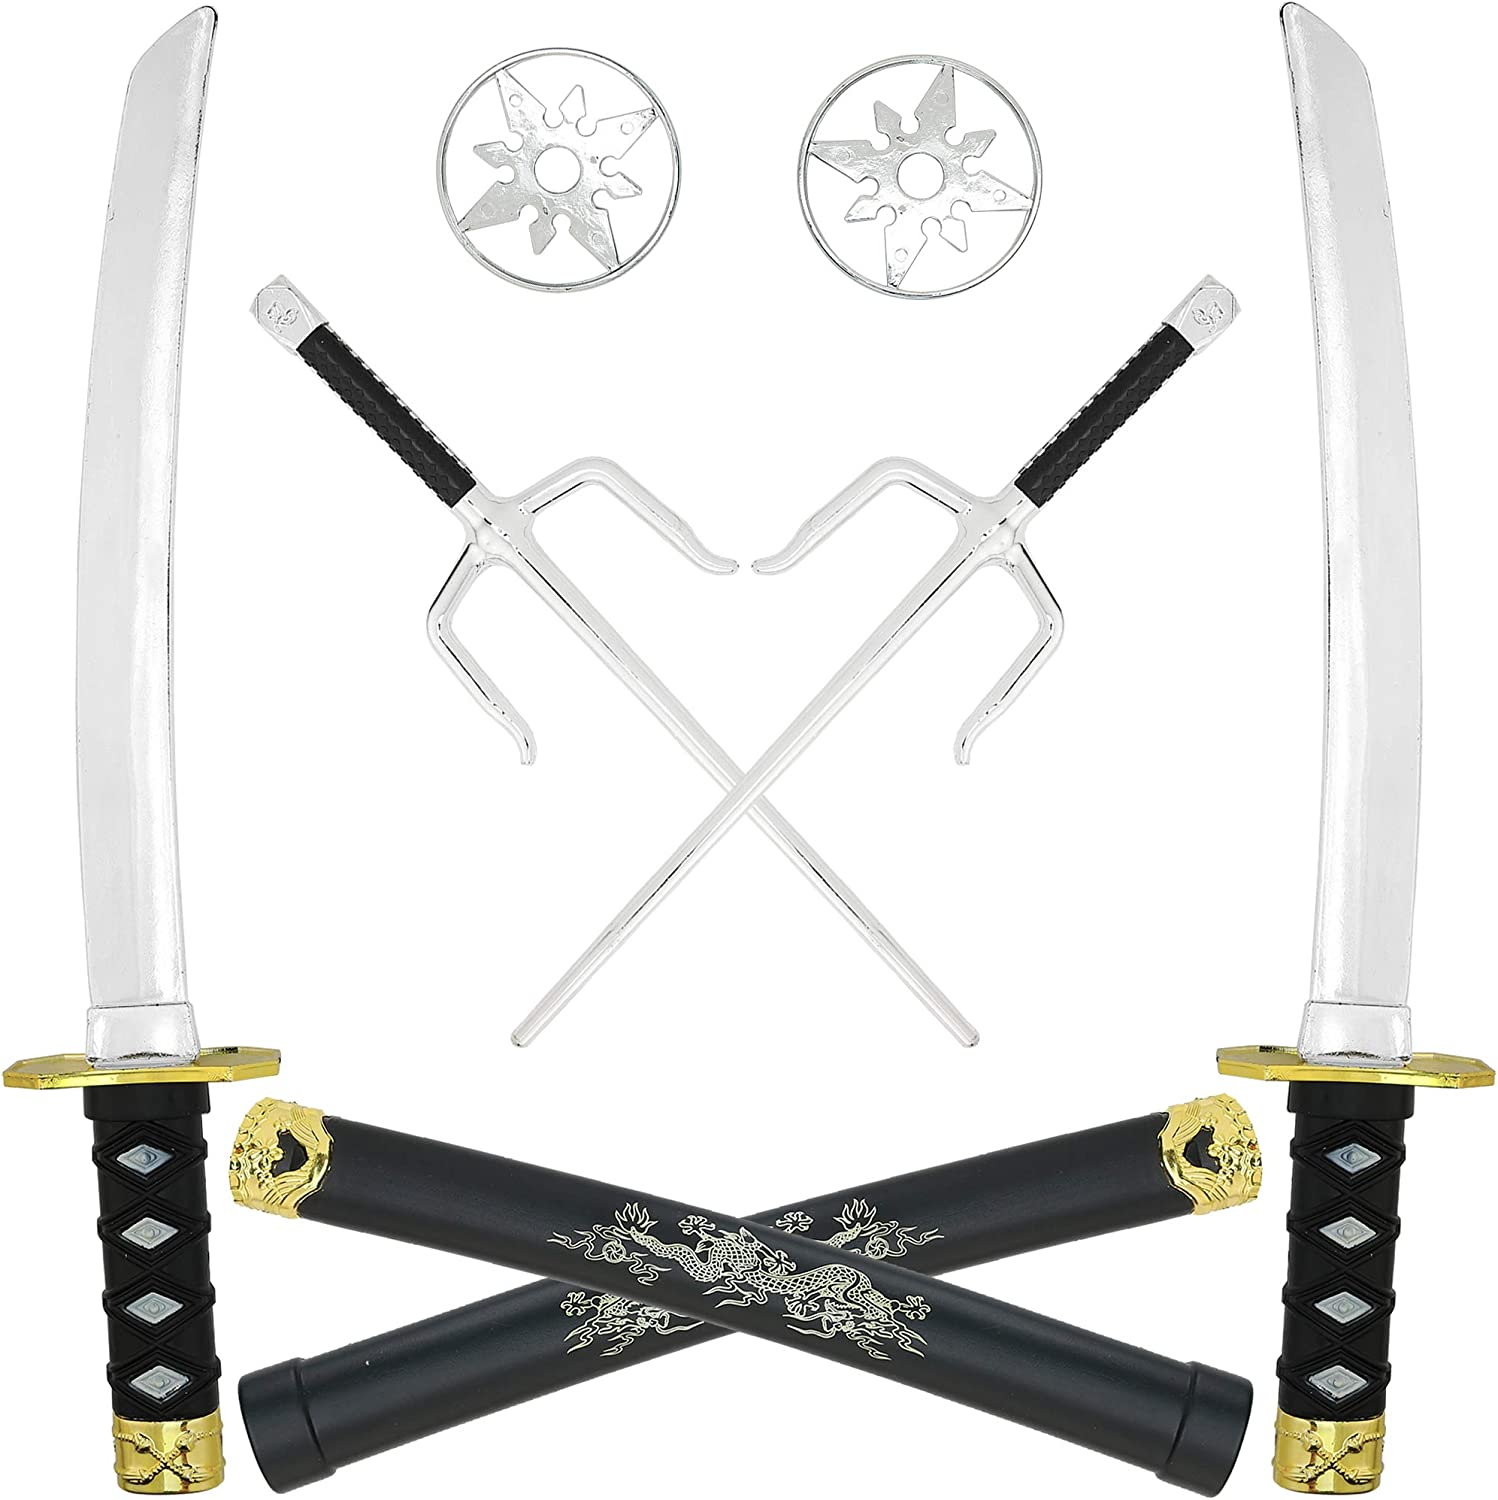 Skeleteen Ninja Weapons Toy Set - Fighting Warrior Weapon Costume Set with Katana Swords, Sai Daggers, and Shuriken Stars - 6 Pieces